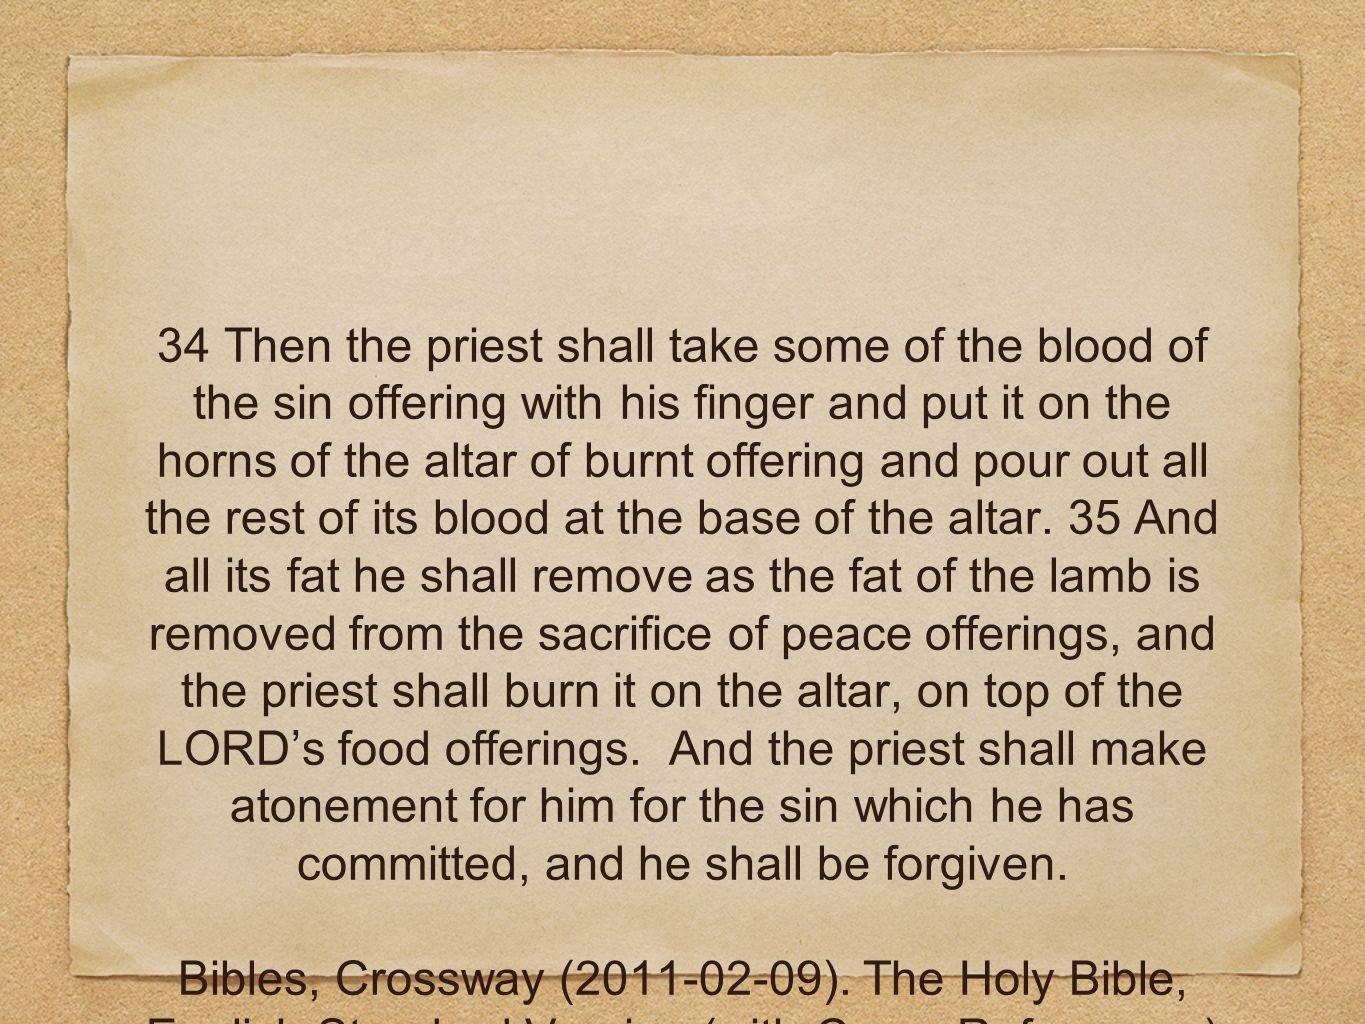 34 Then the priest shall take some of the blood of the sin offering with his finger and put it on the horns of the altar of burnt offering and pour out all the rest of its blood at the base of the altar.